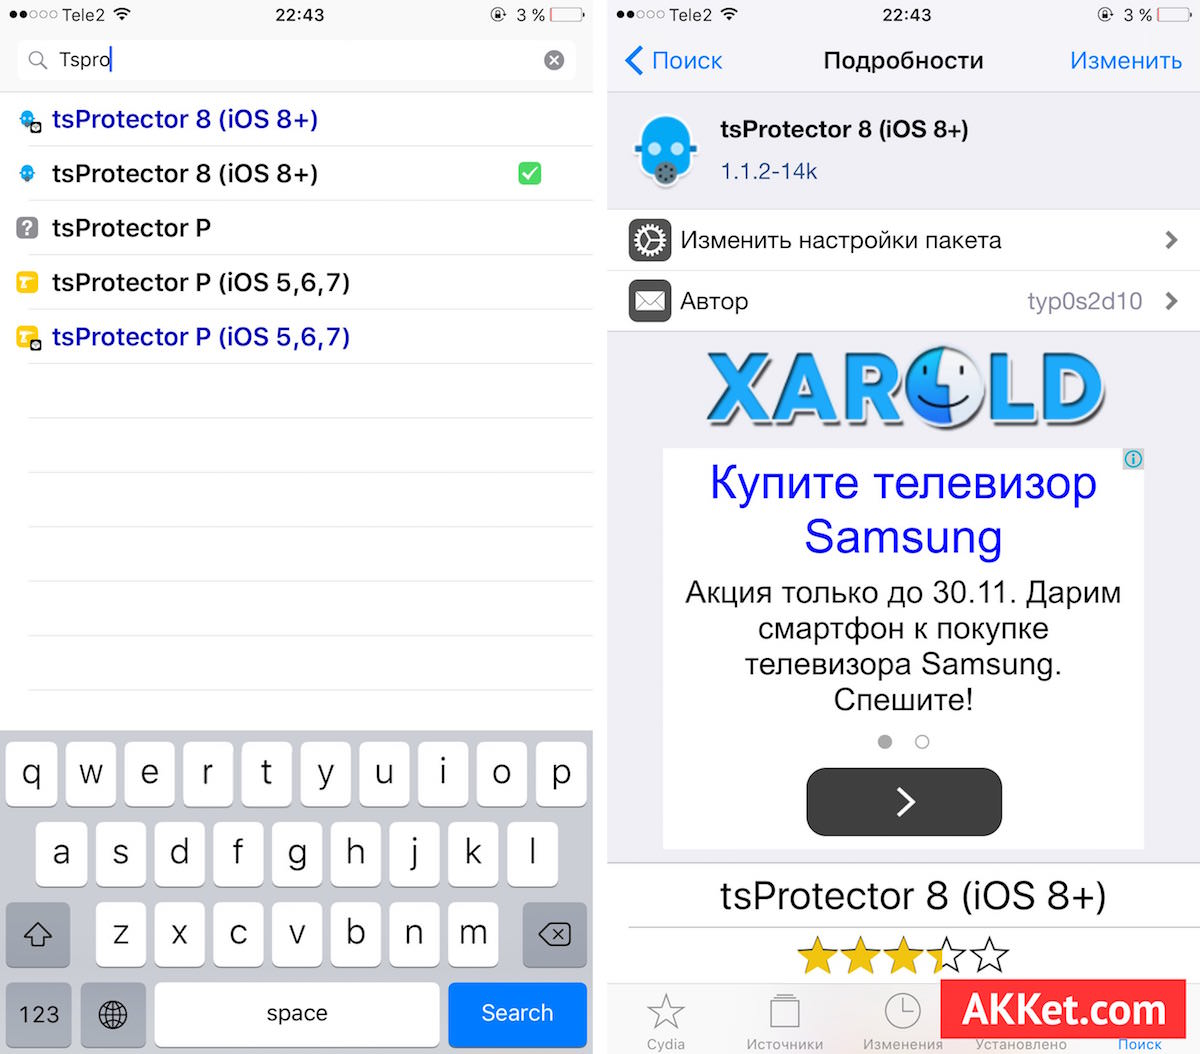 Сбербанк Онлайн джейлбрейк iOS 9 iPhone iPad iPod Touch 22